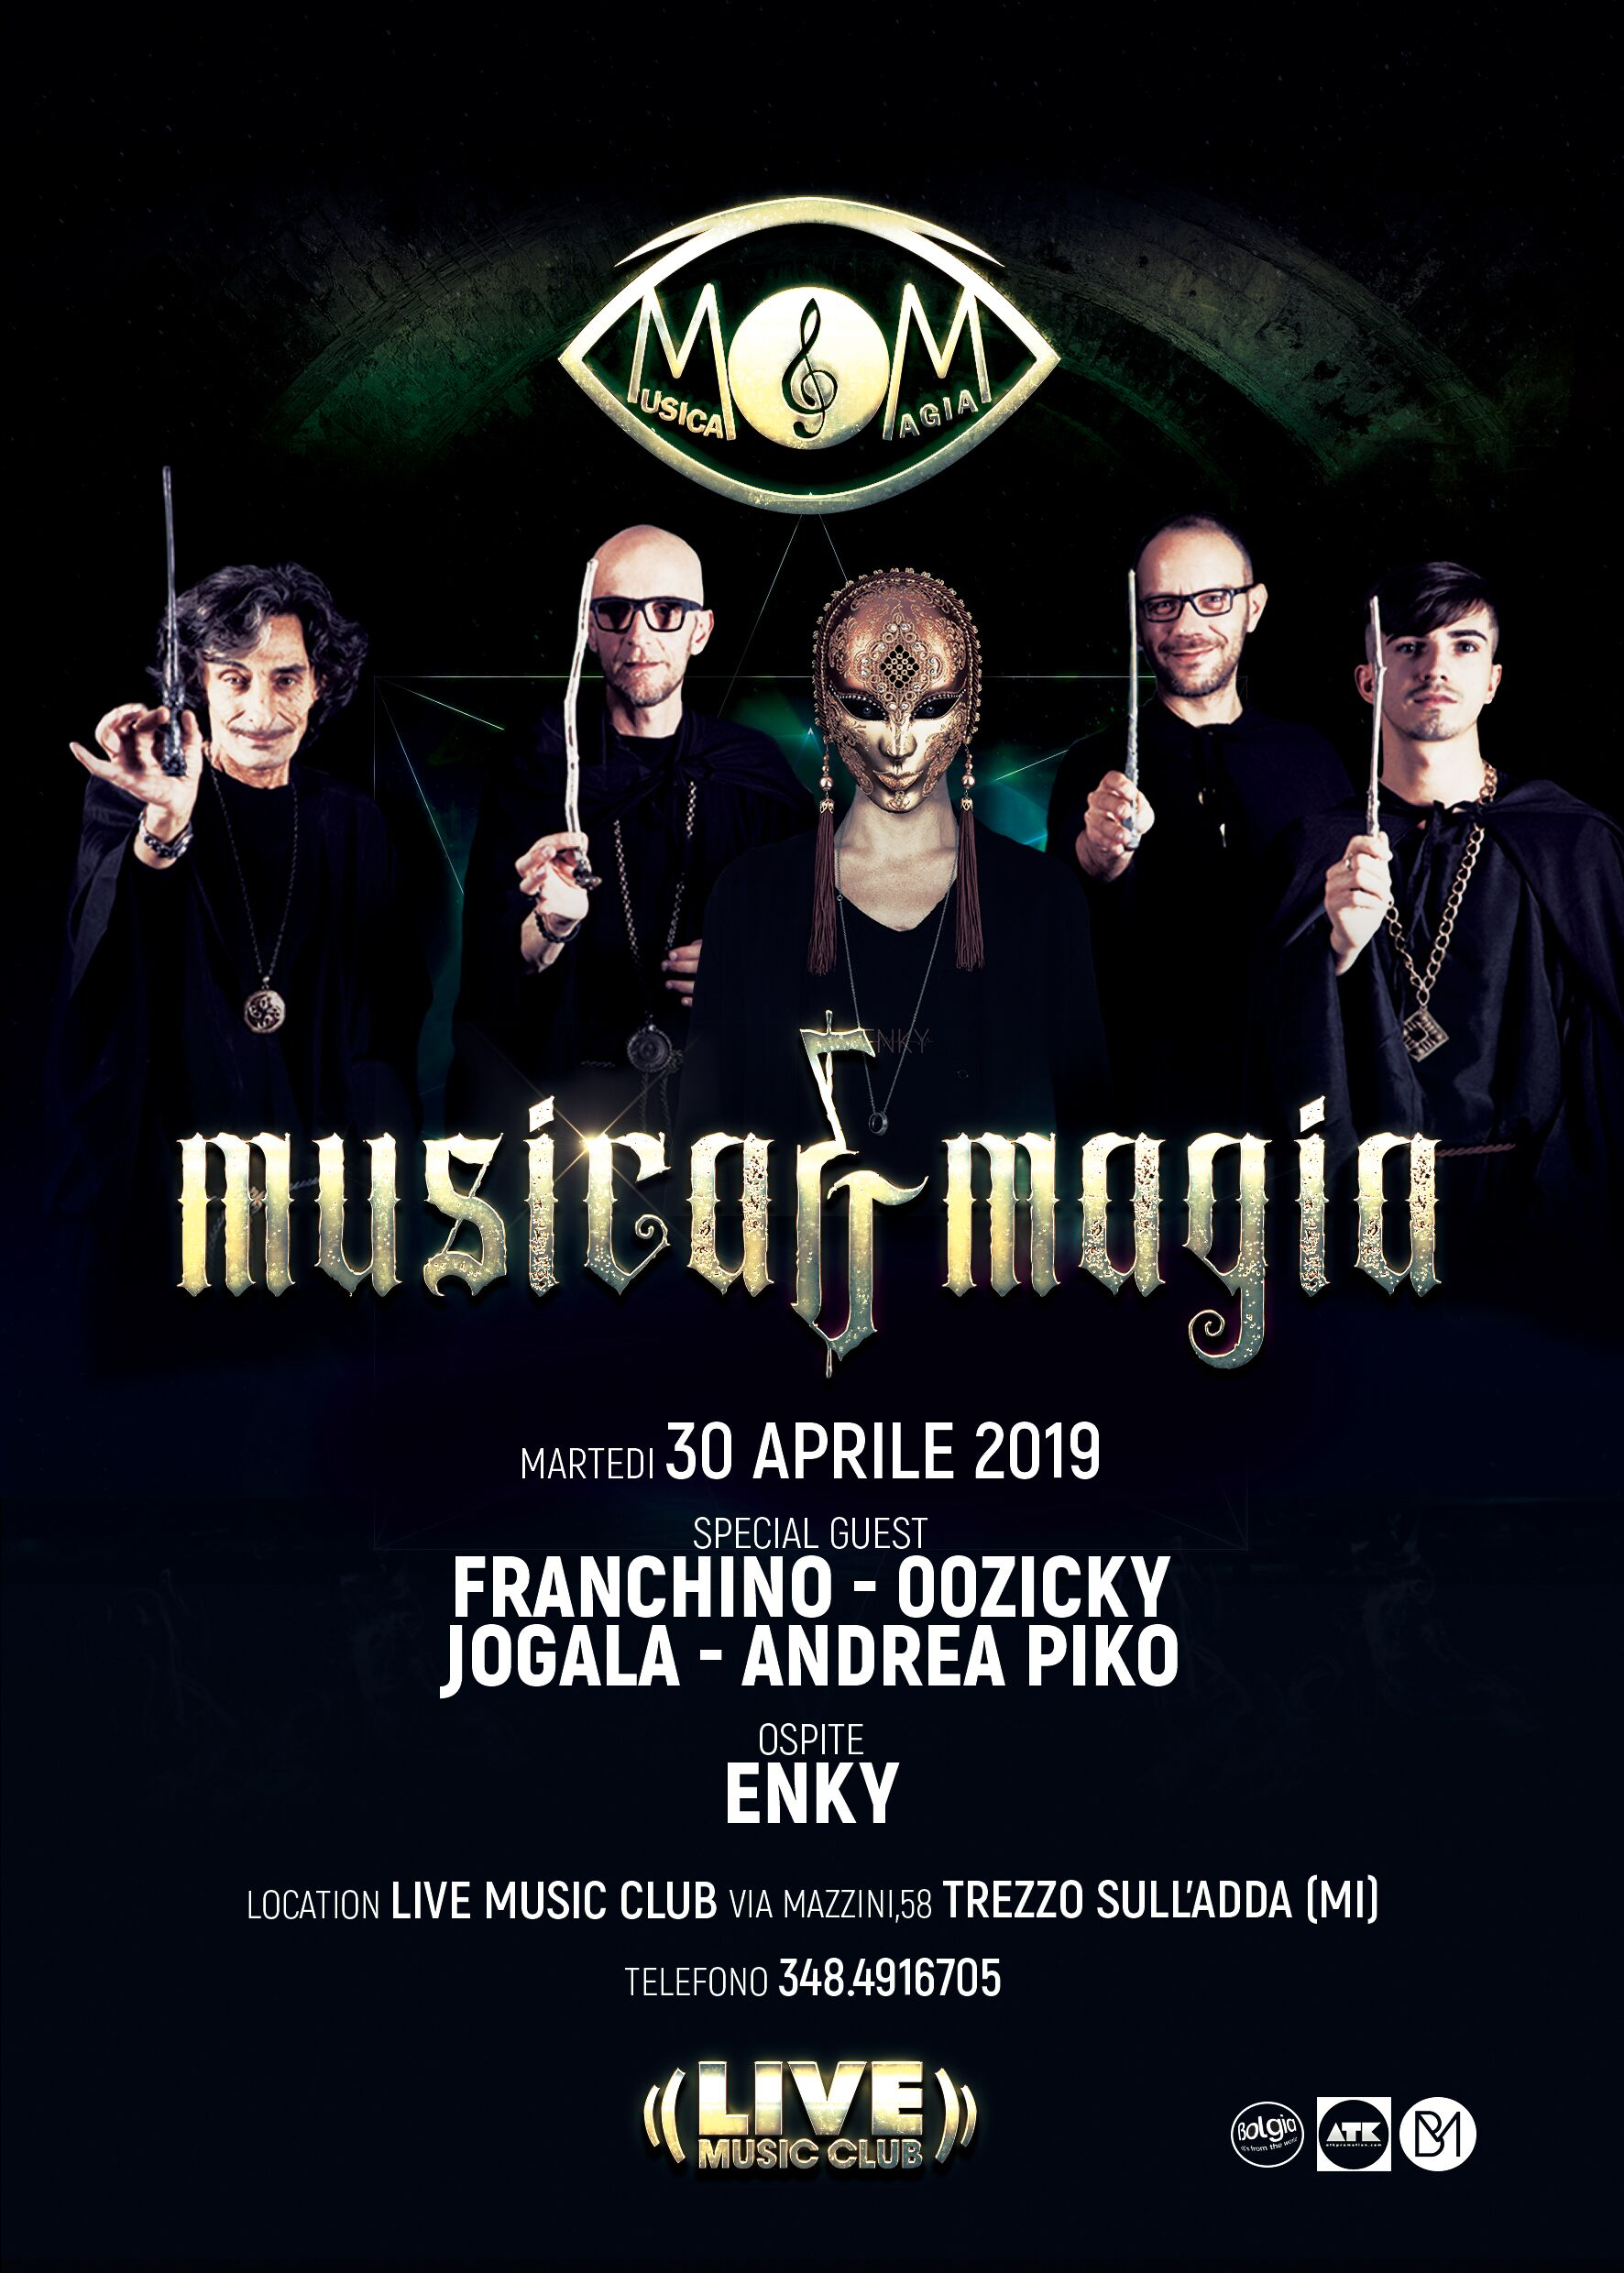 Musica&Magia @ Live Music Club